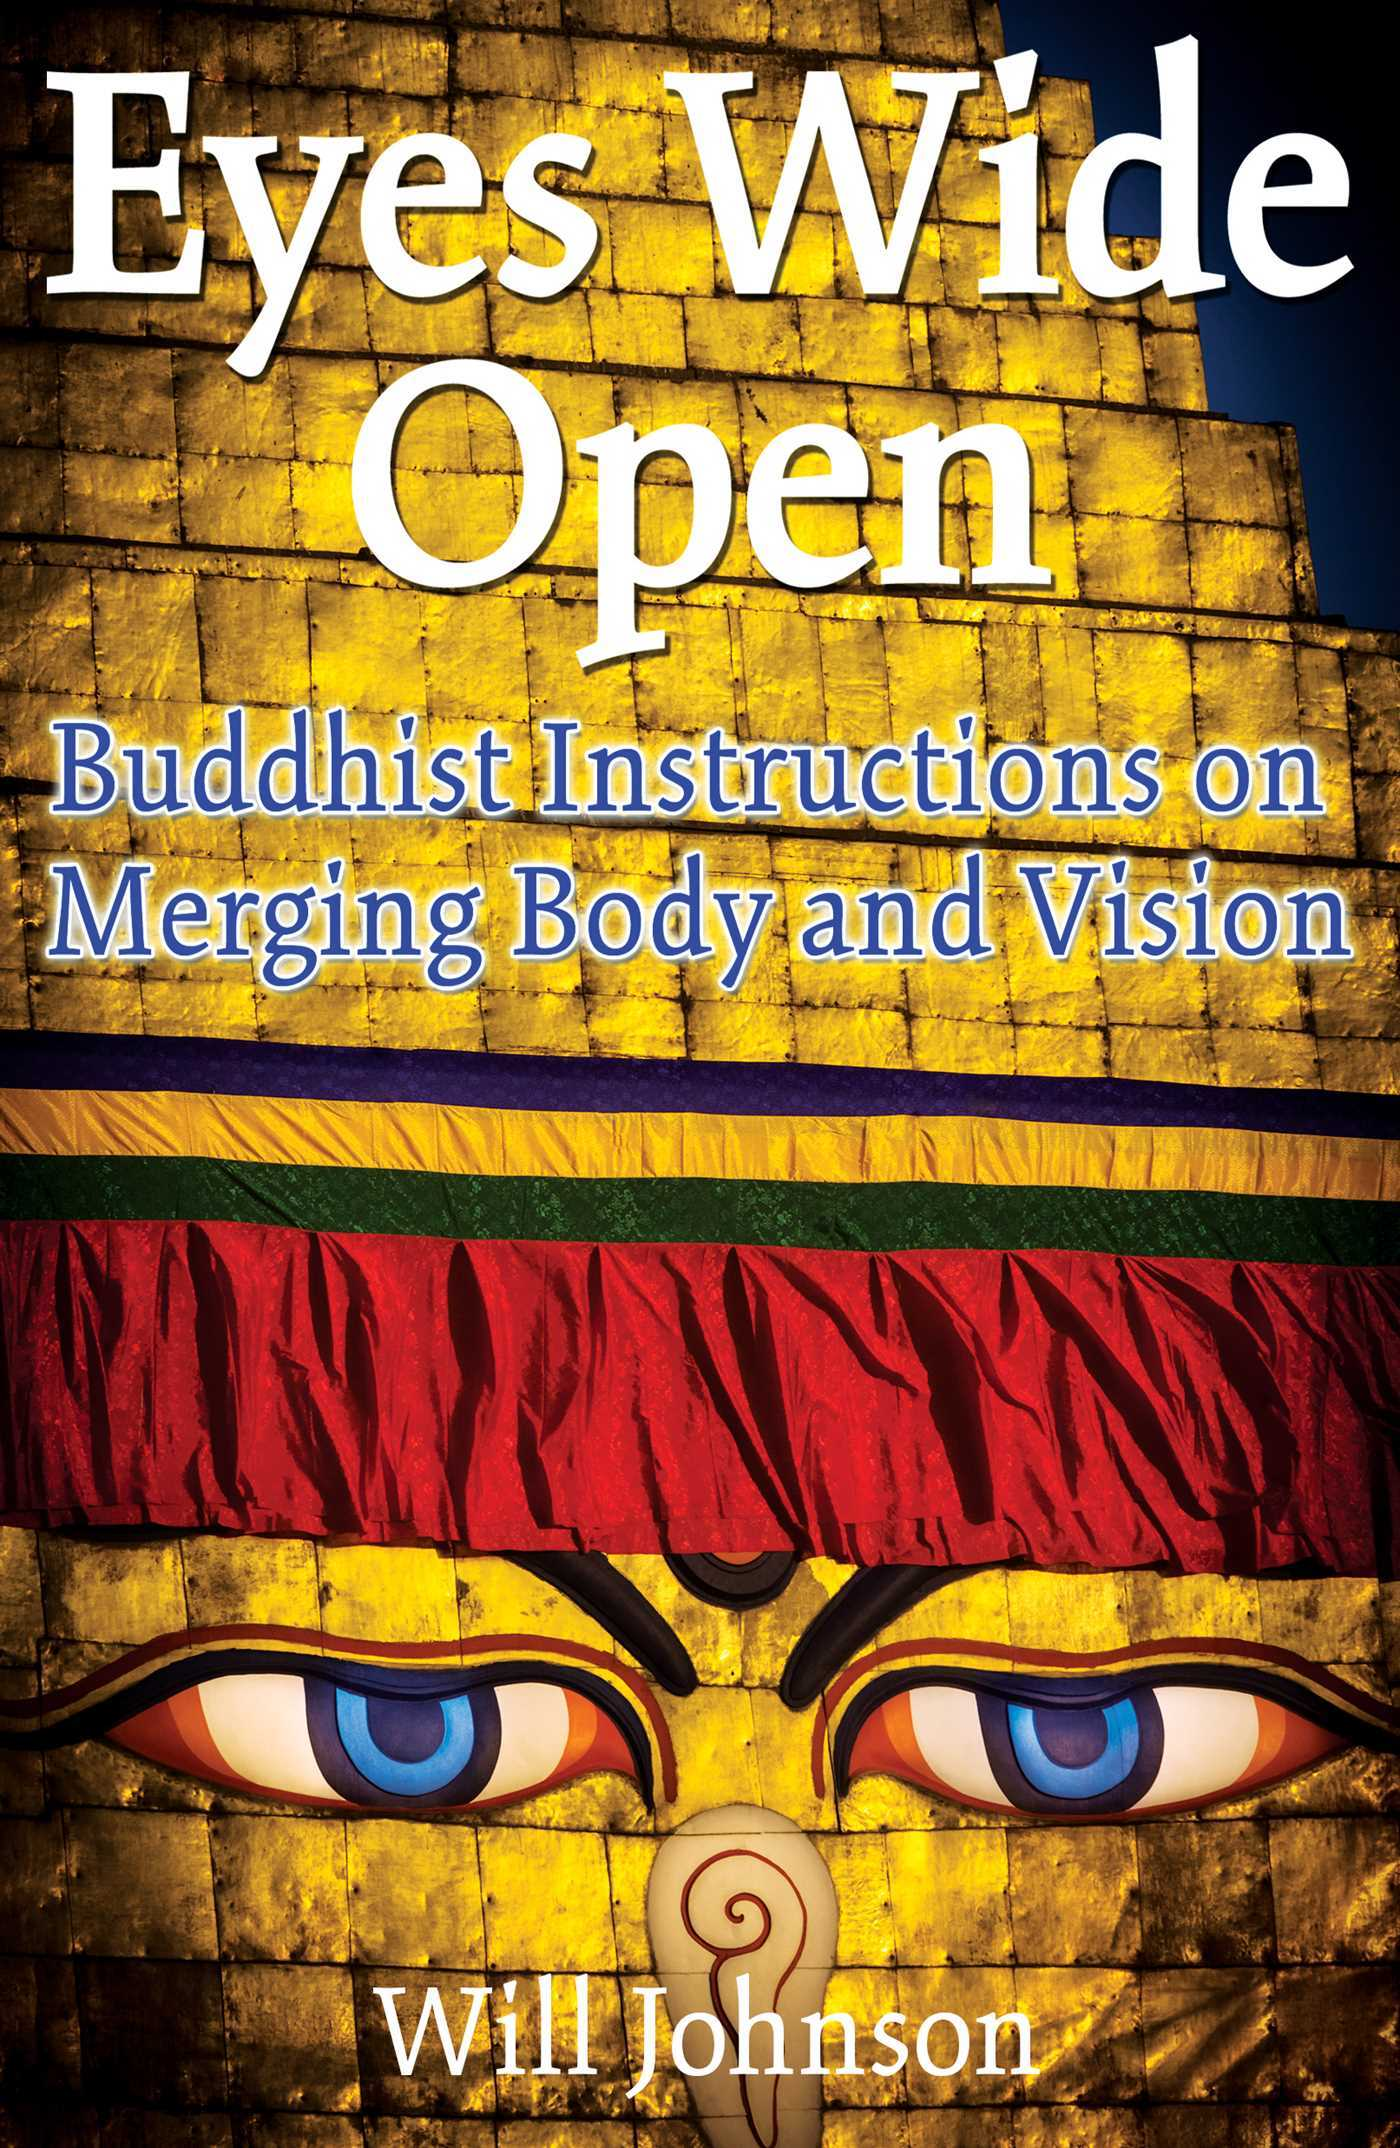 Eyes Wide Open Buddhist Instructions on Merging Body and Vision